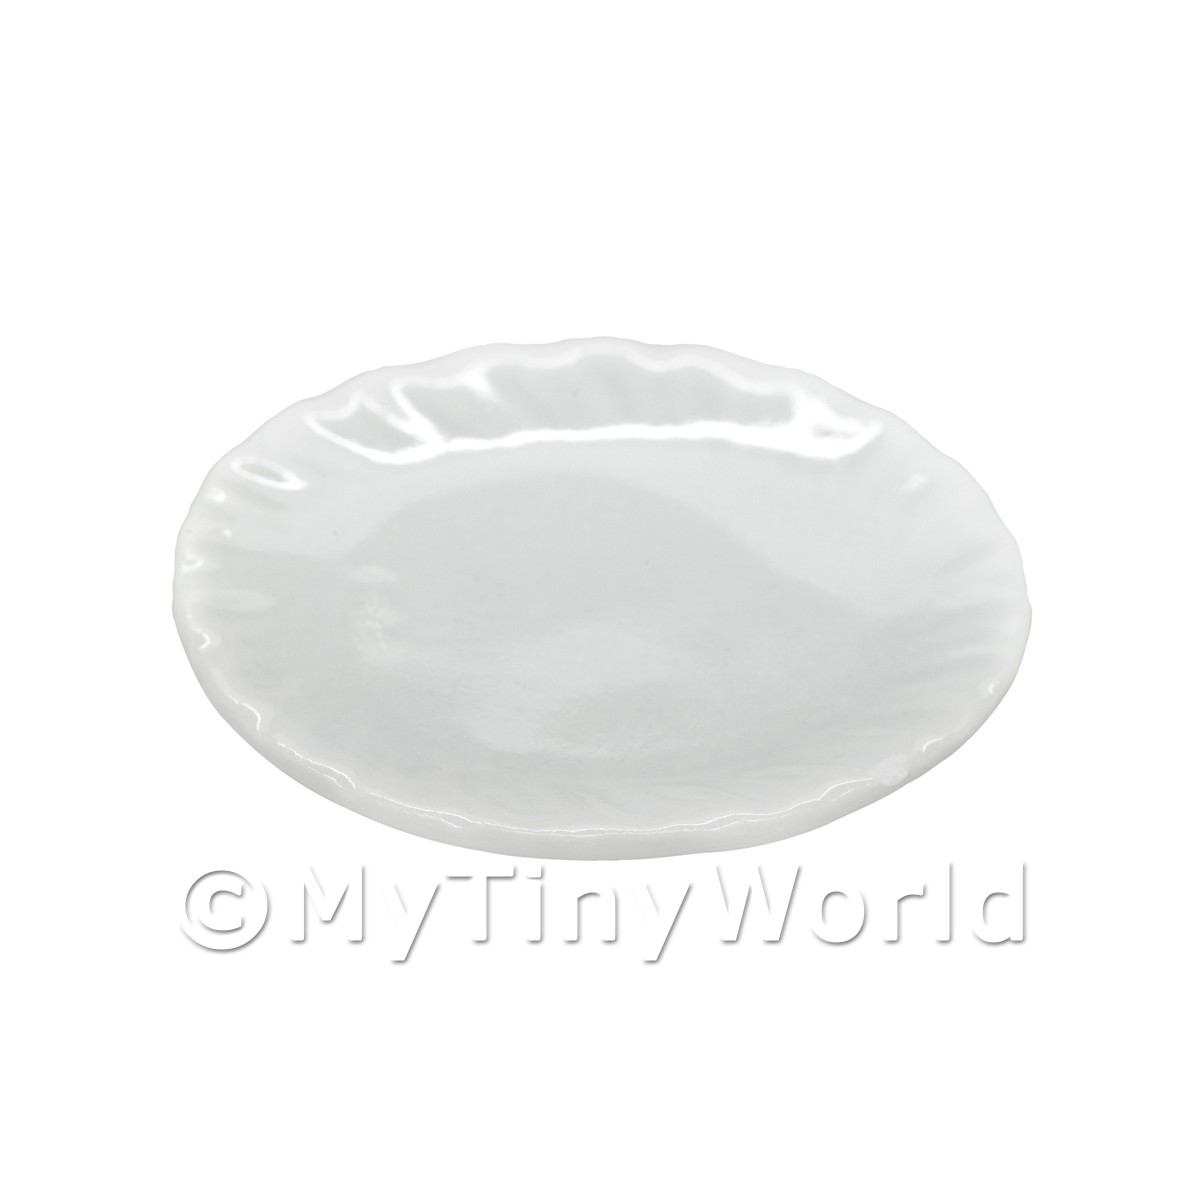 34mm Dolls House Miniature White Glazed Ceramic Plate With Fluted Edge